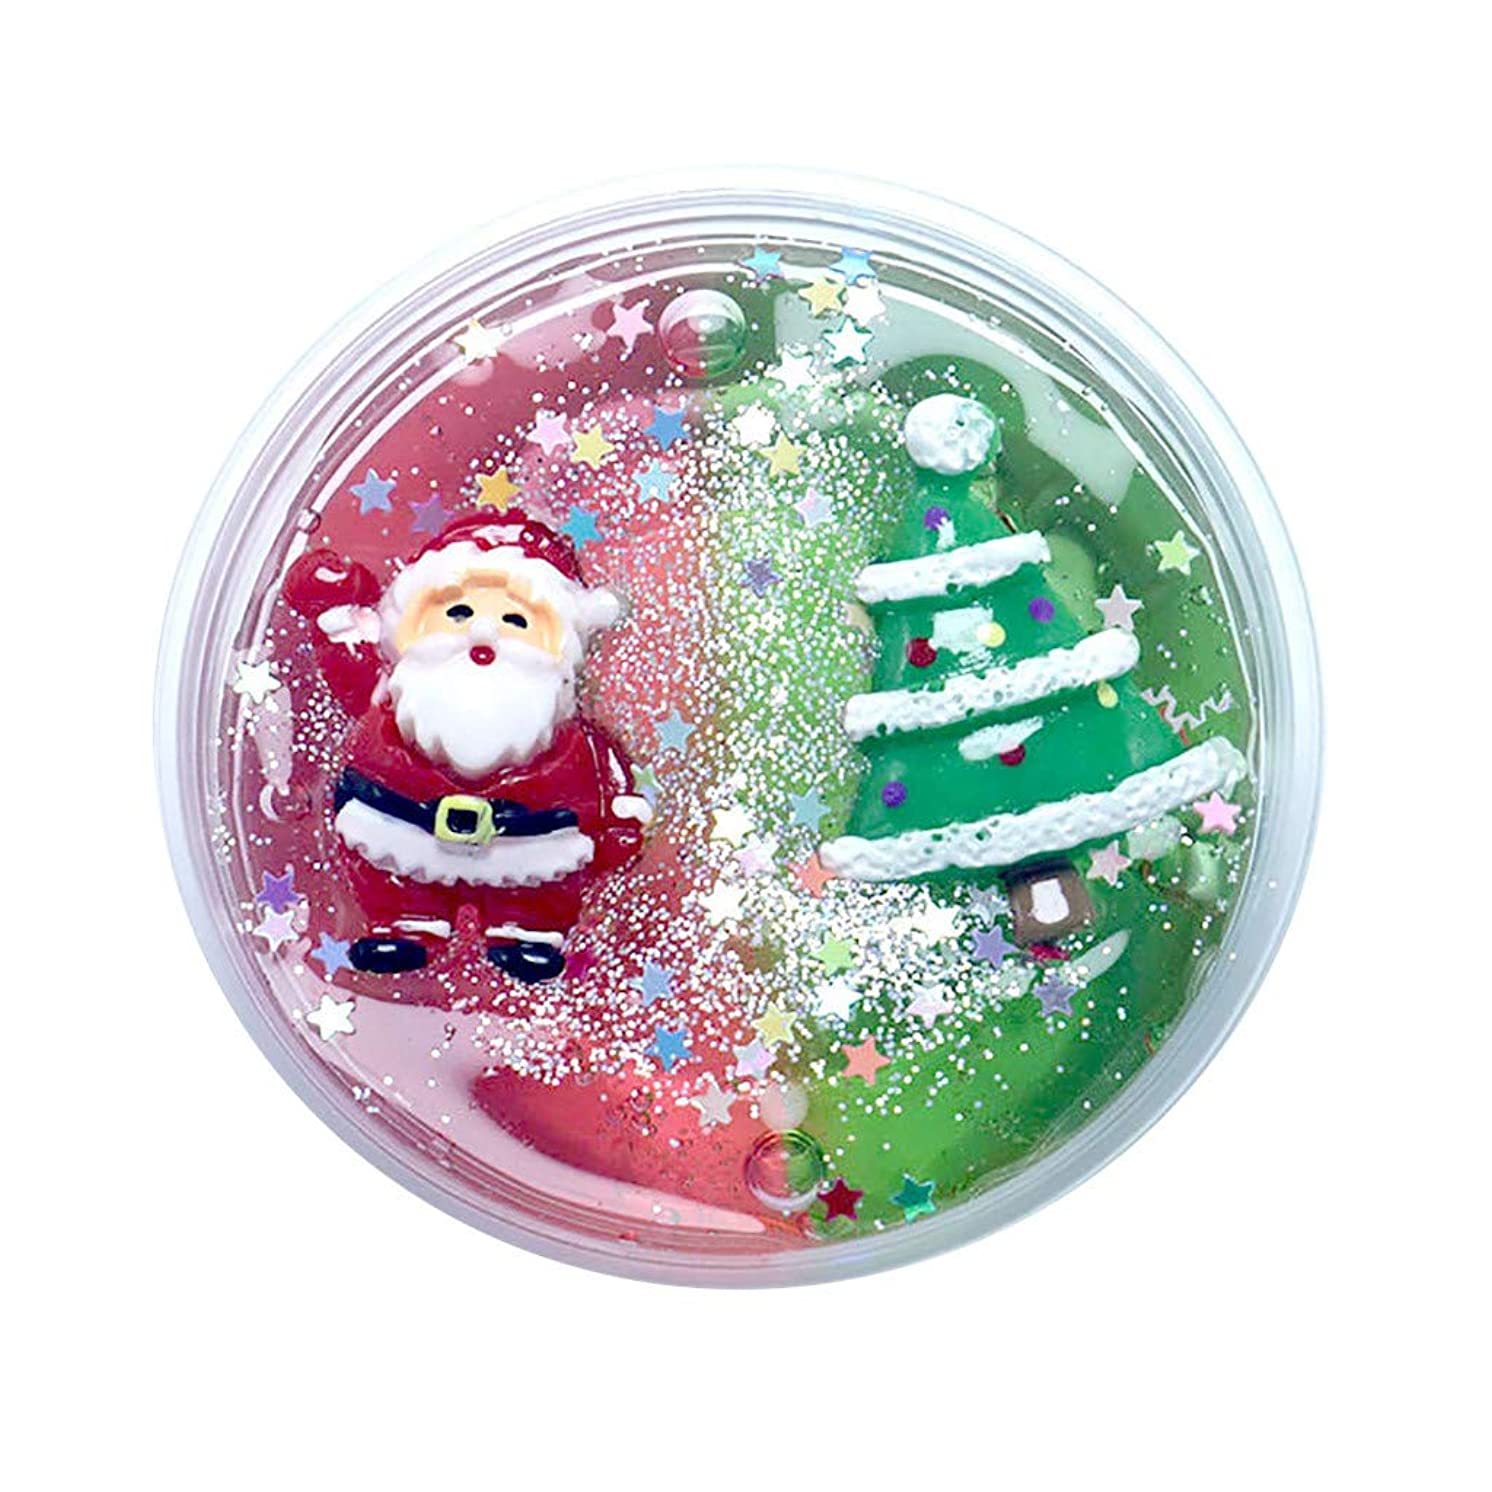 UOFOCO Christmas Slime Scented Charm Soft Mud Stress Relief Kids Clay Toys Xmas A